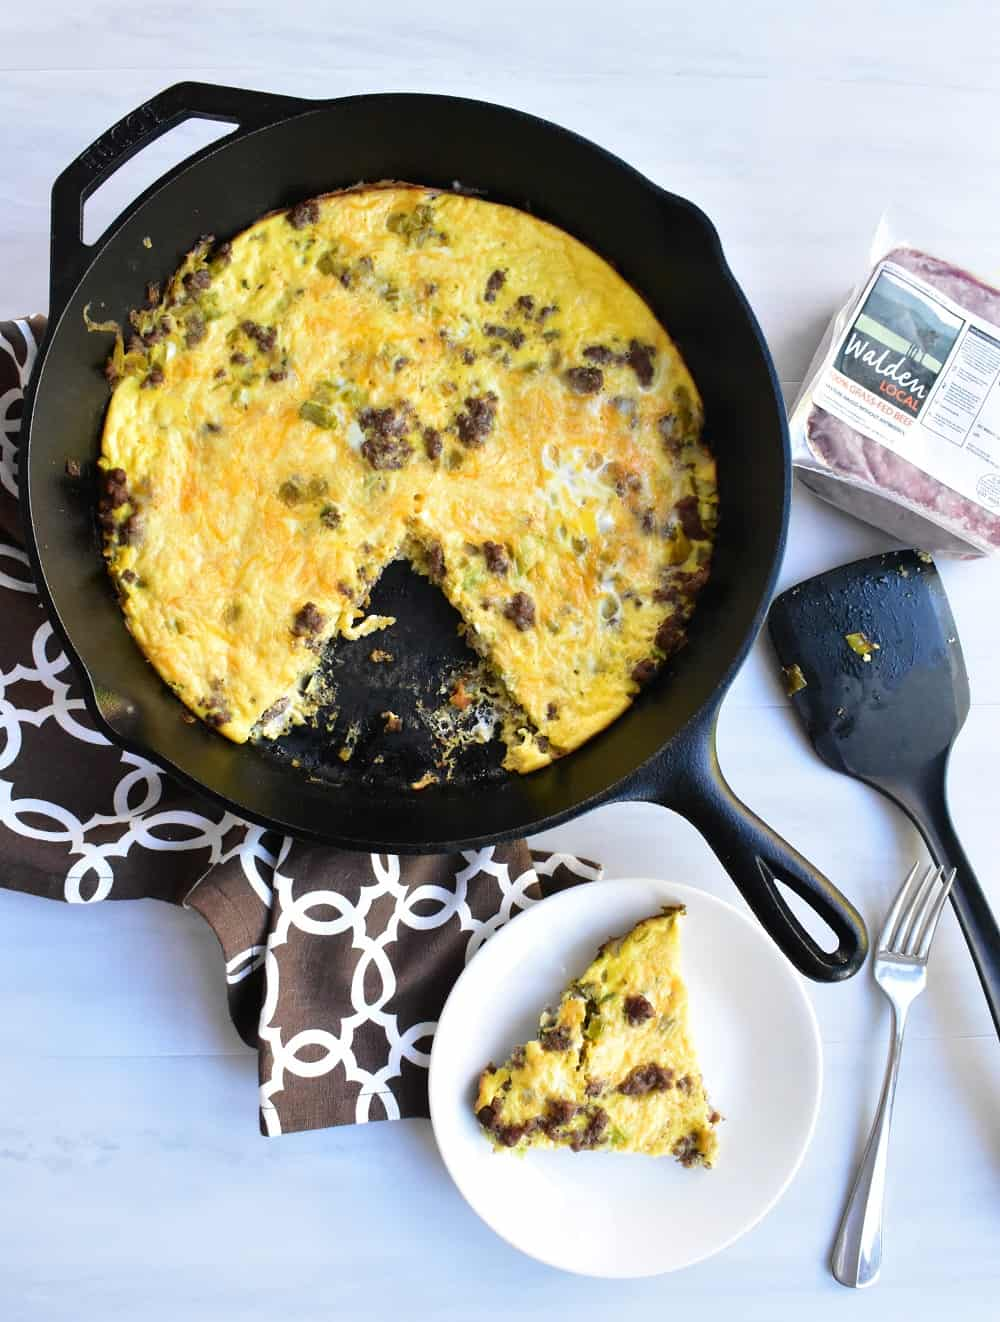 Cheeseburger frittata on a plate and in a cast iron skillet